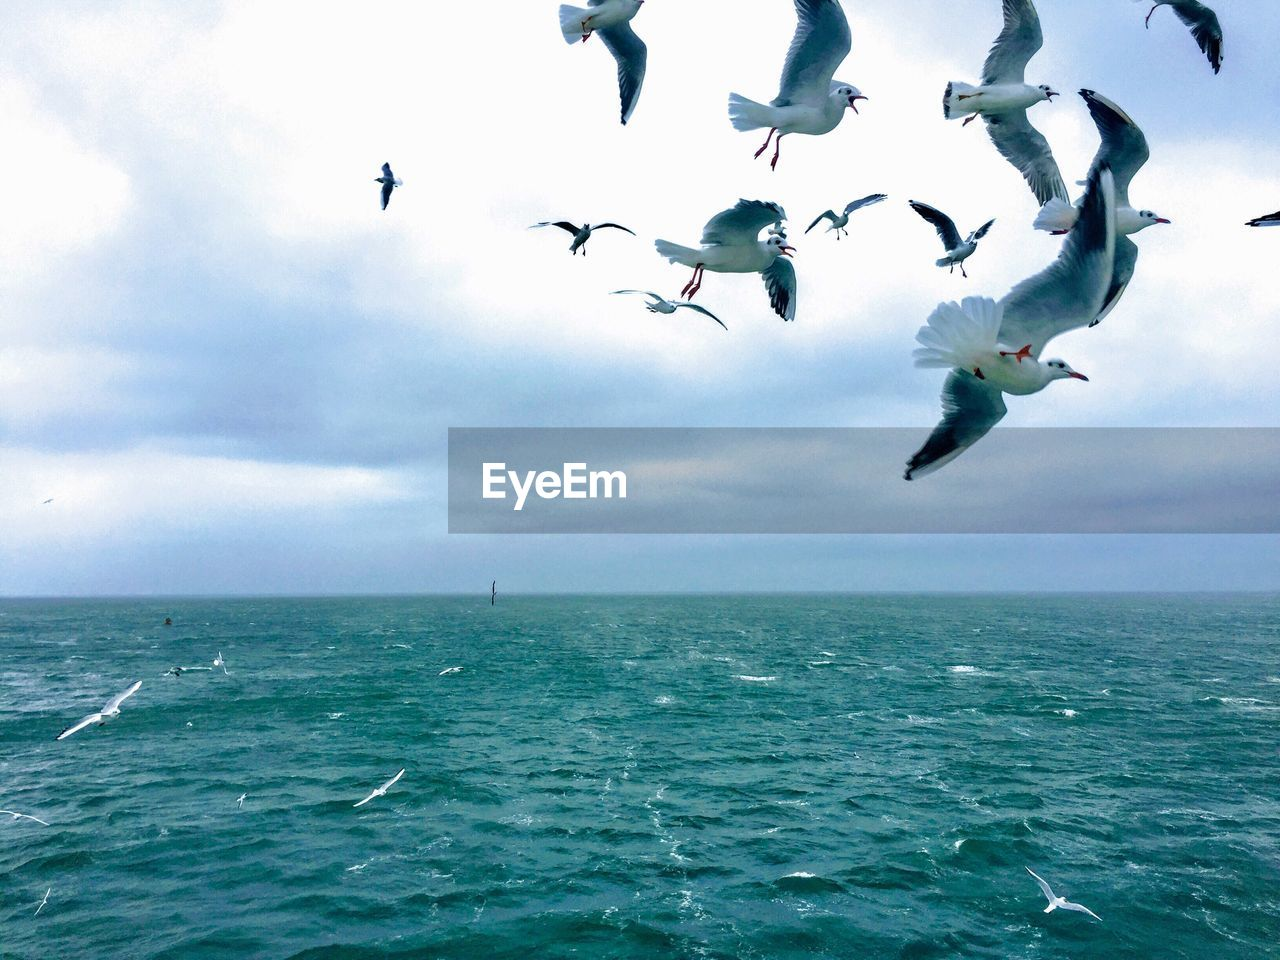 sea, animals in the wild, water, sky, group of animals, animal themes, animal, animal wildlife, vertebrate, flying, bird, horizon over water, horizon, large group of animals, beauty in nature, cloud - sky, waterfront, nature, scenics - nature, no people, seagull, flock of birds, outdoors, marine, turquoise colored